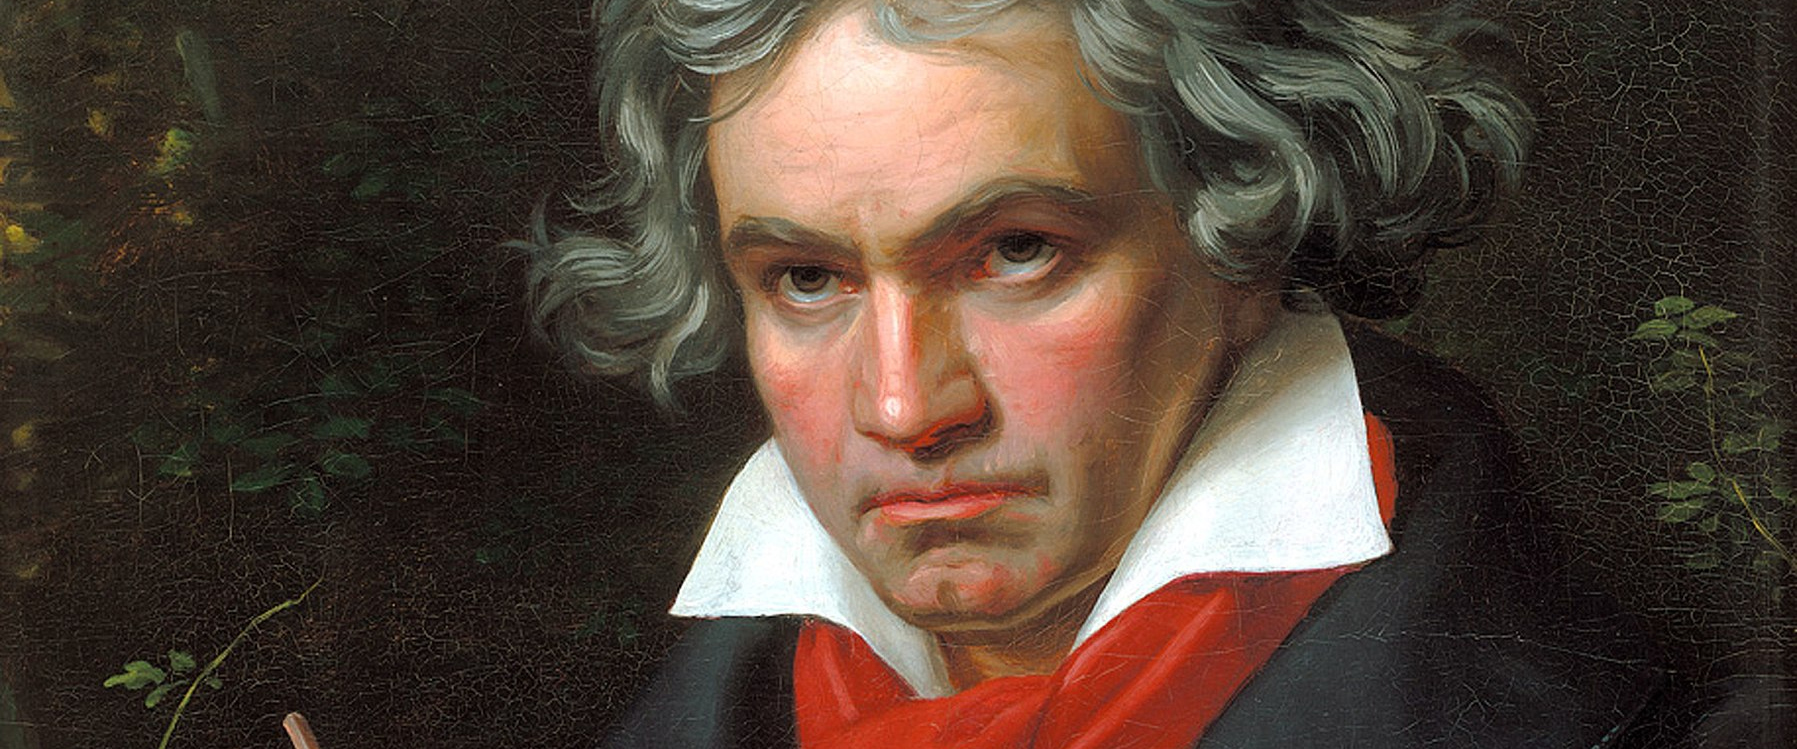 Reeking Gloriously of the Street: Beethoven at 250